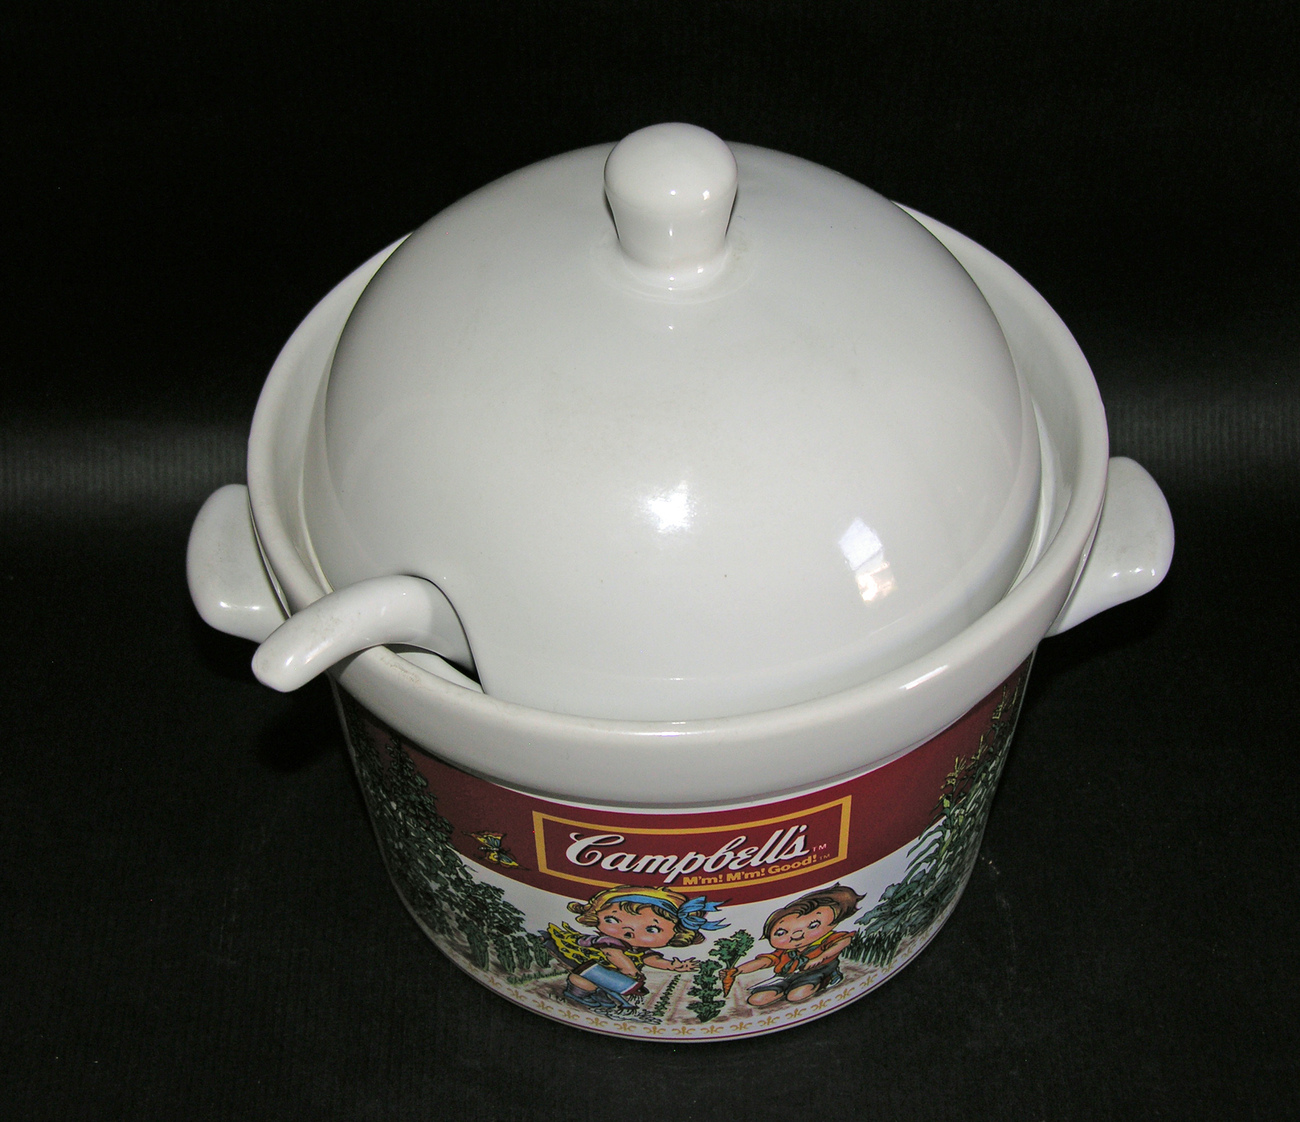 Campbells_tureen_set_4